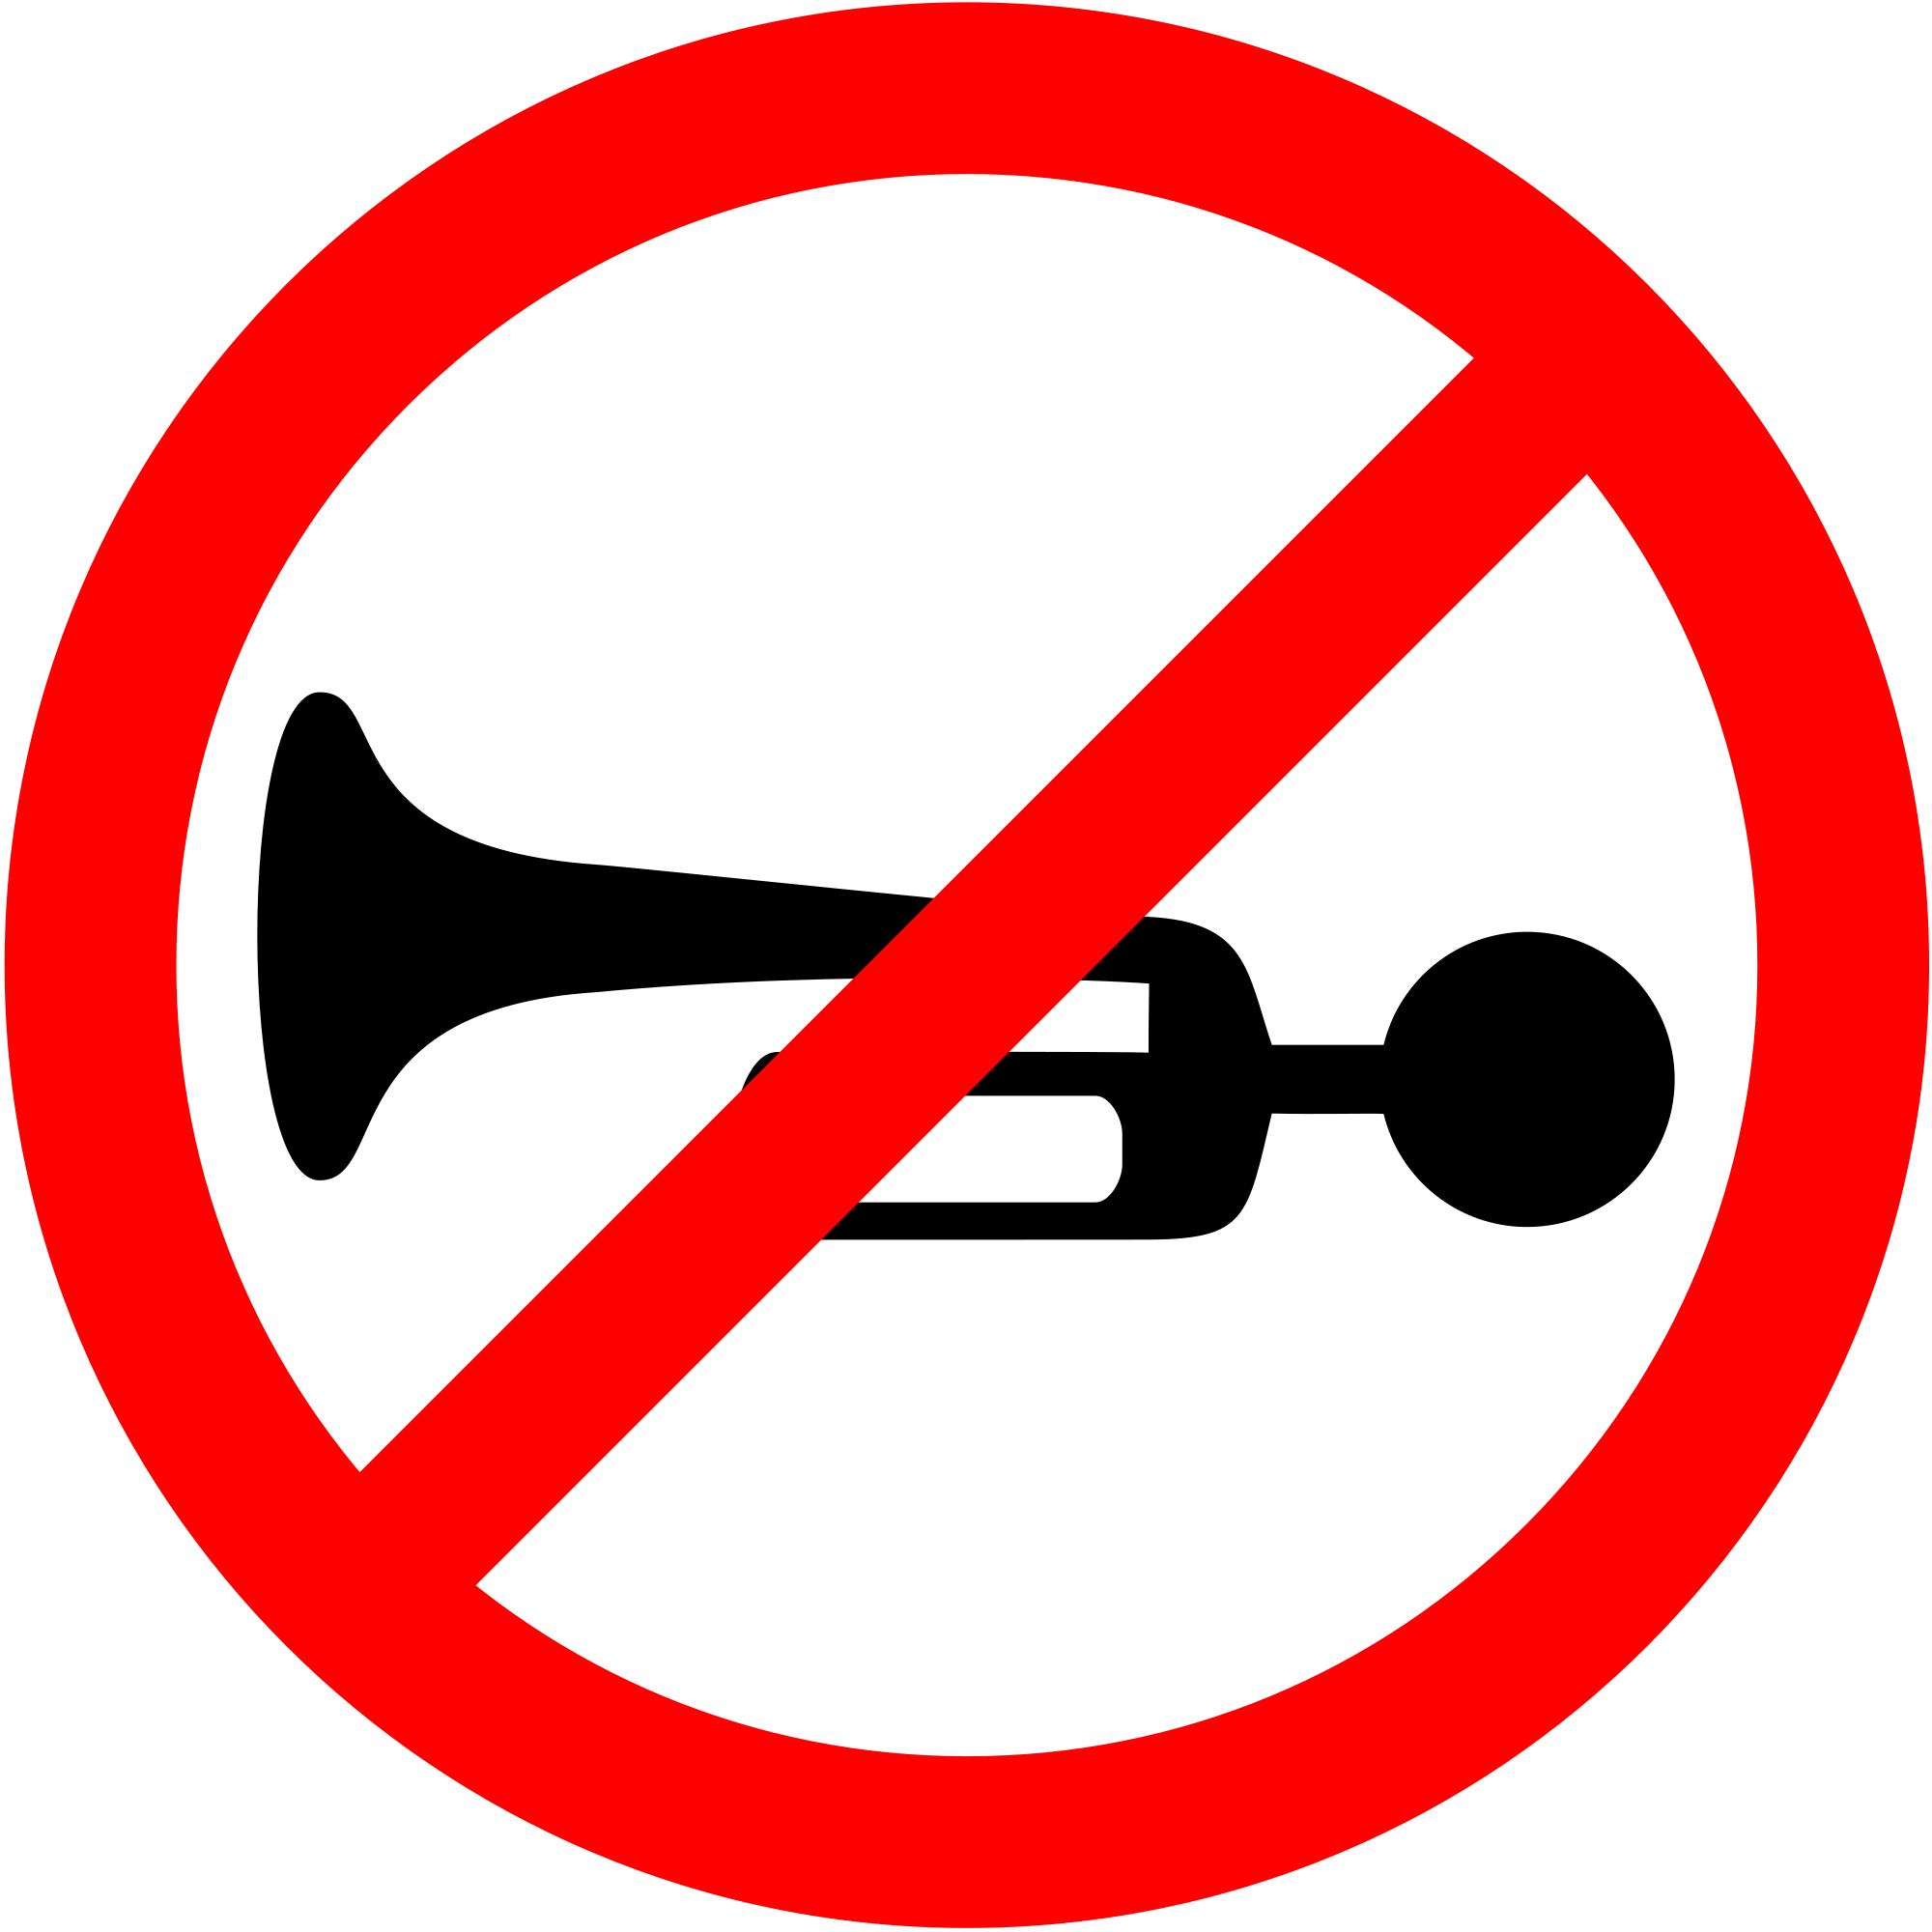 Horn clipart svg. File prohibited sign india